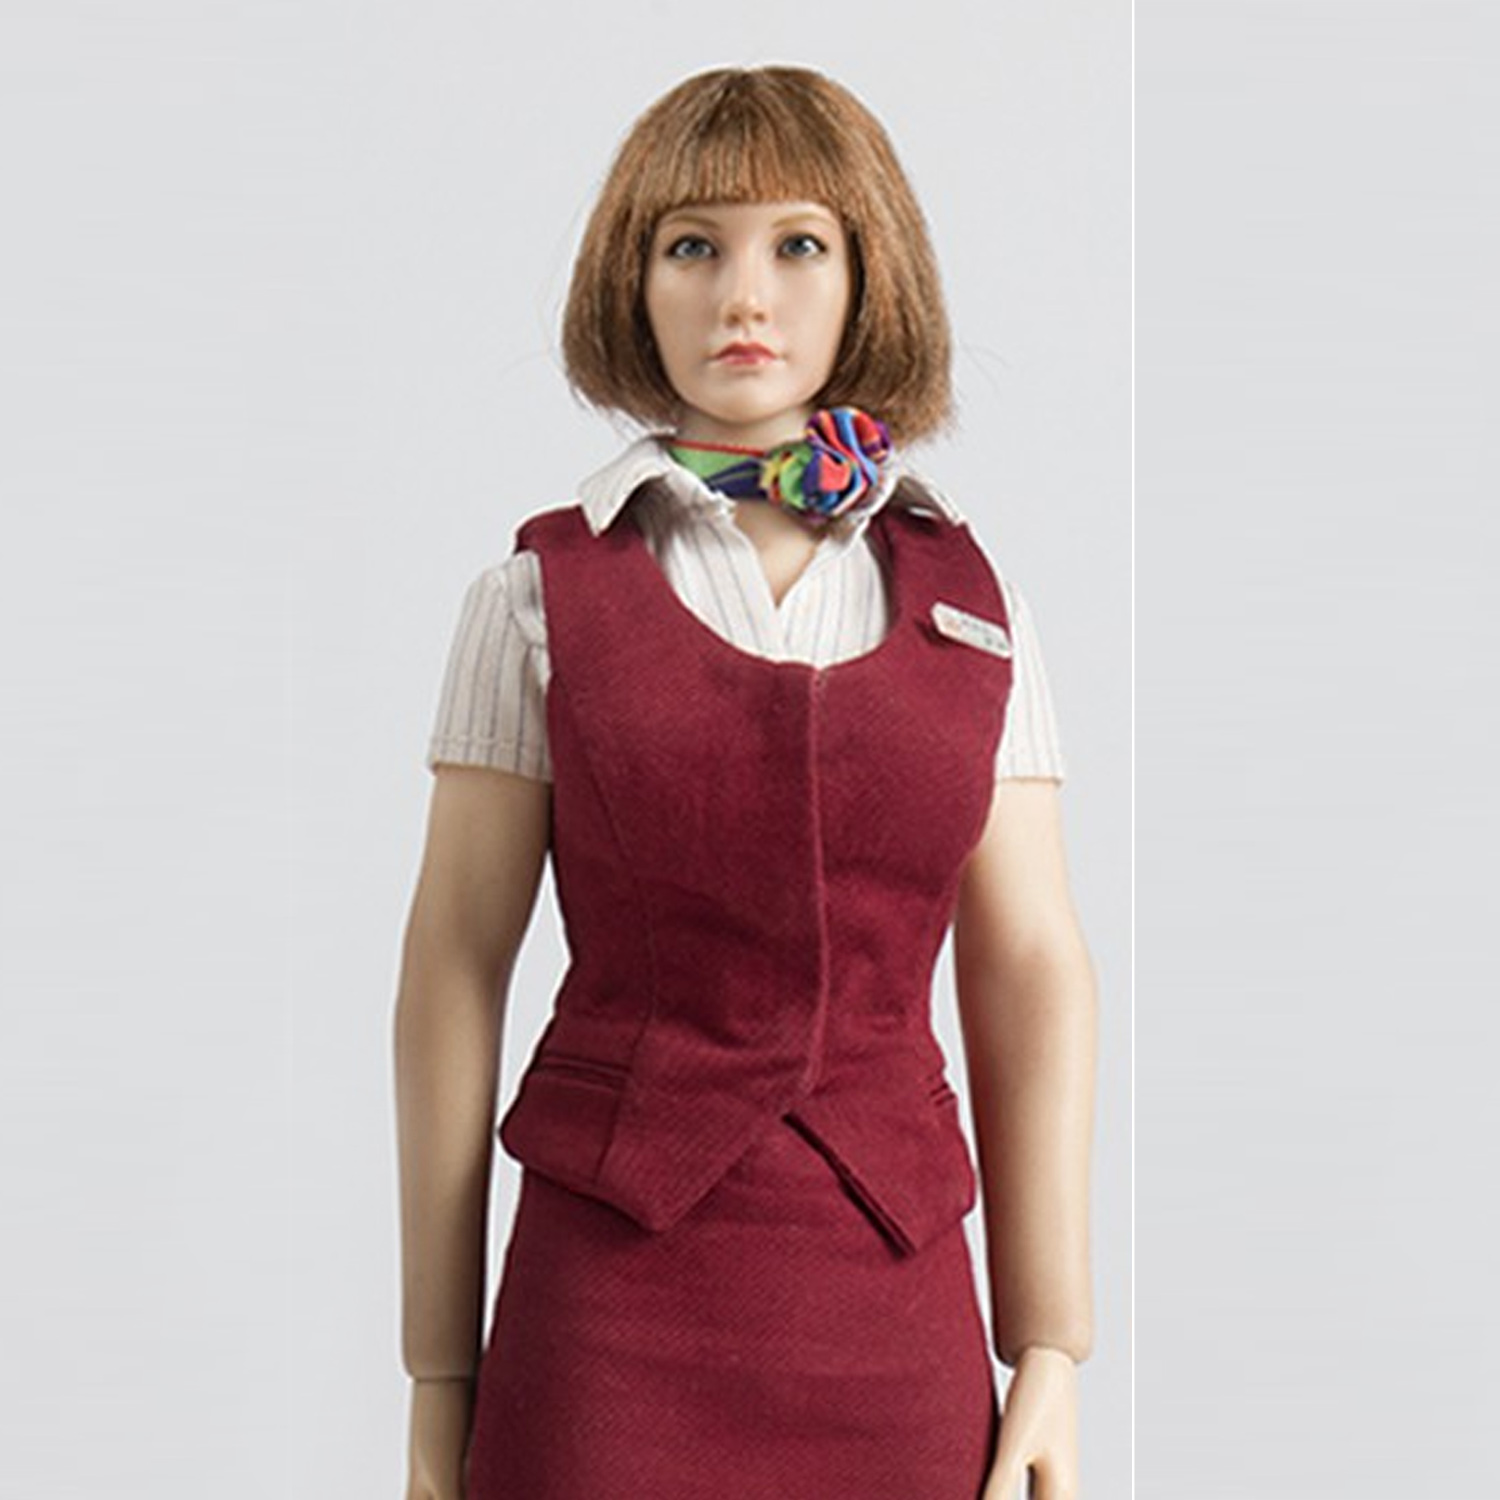 Details about  /Wolford Toys WF-S005B 1//6 China Air Hostess Clothing Set Model Toys Blue Color